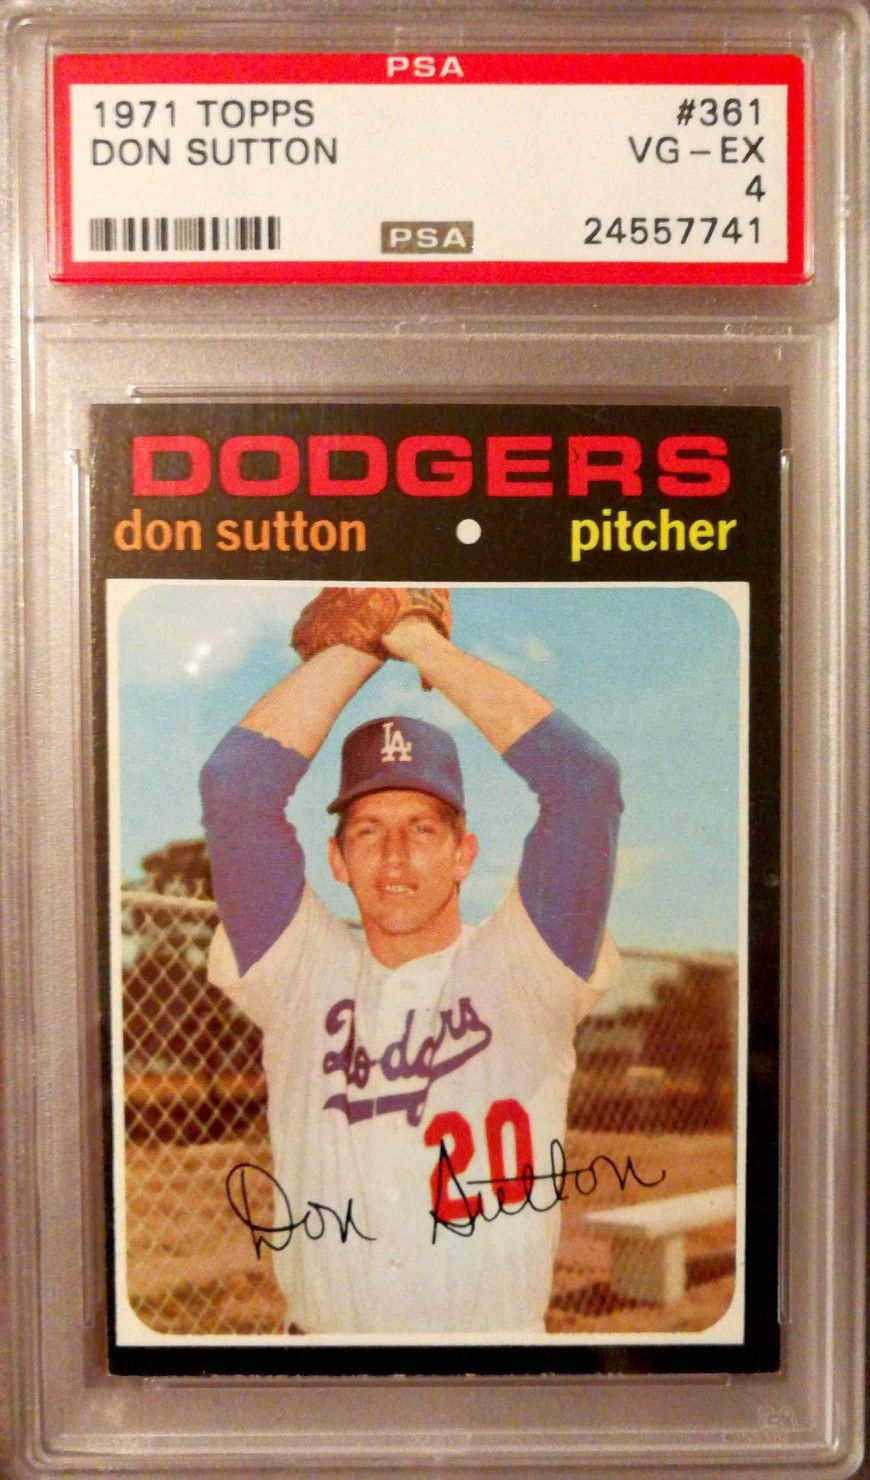 1971 topps don sutton los angeles dodgers baseball